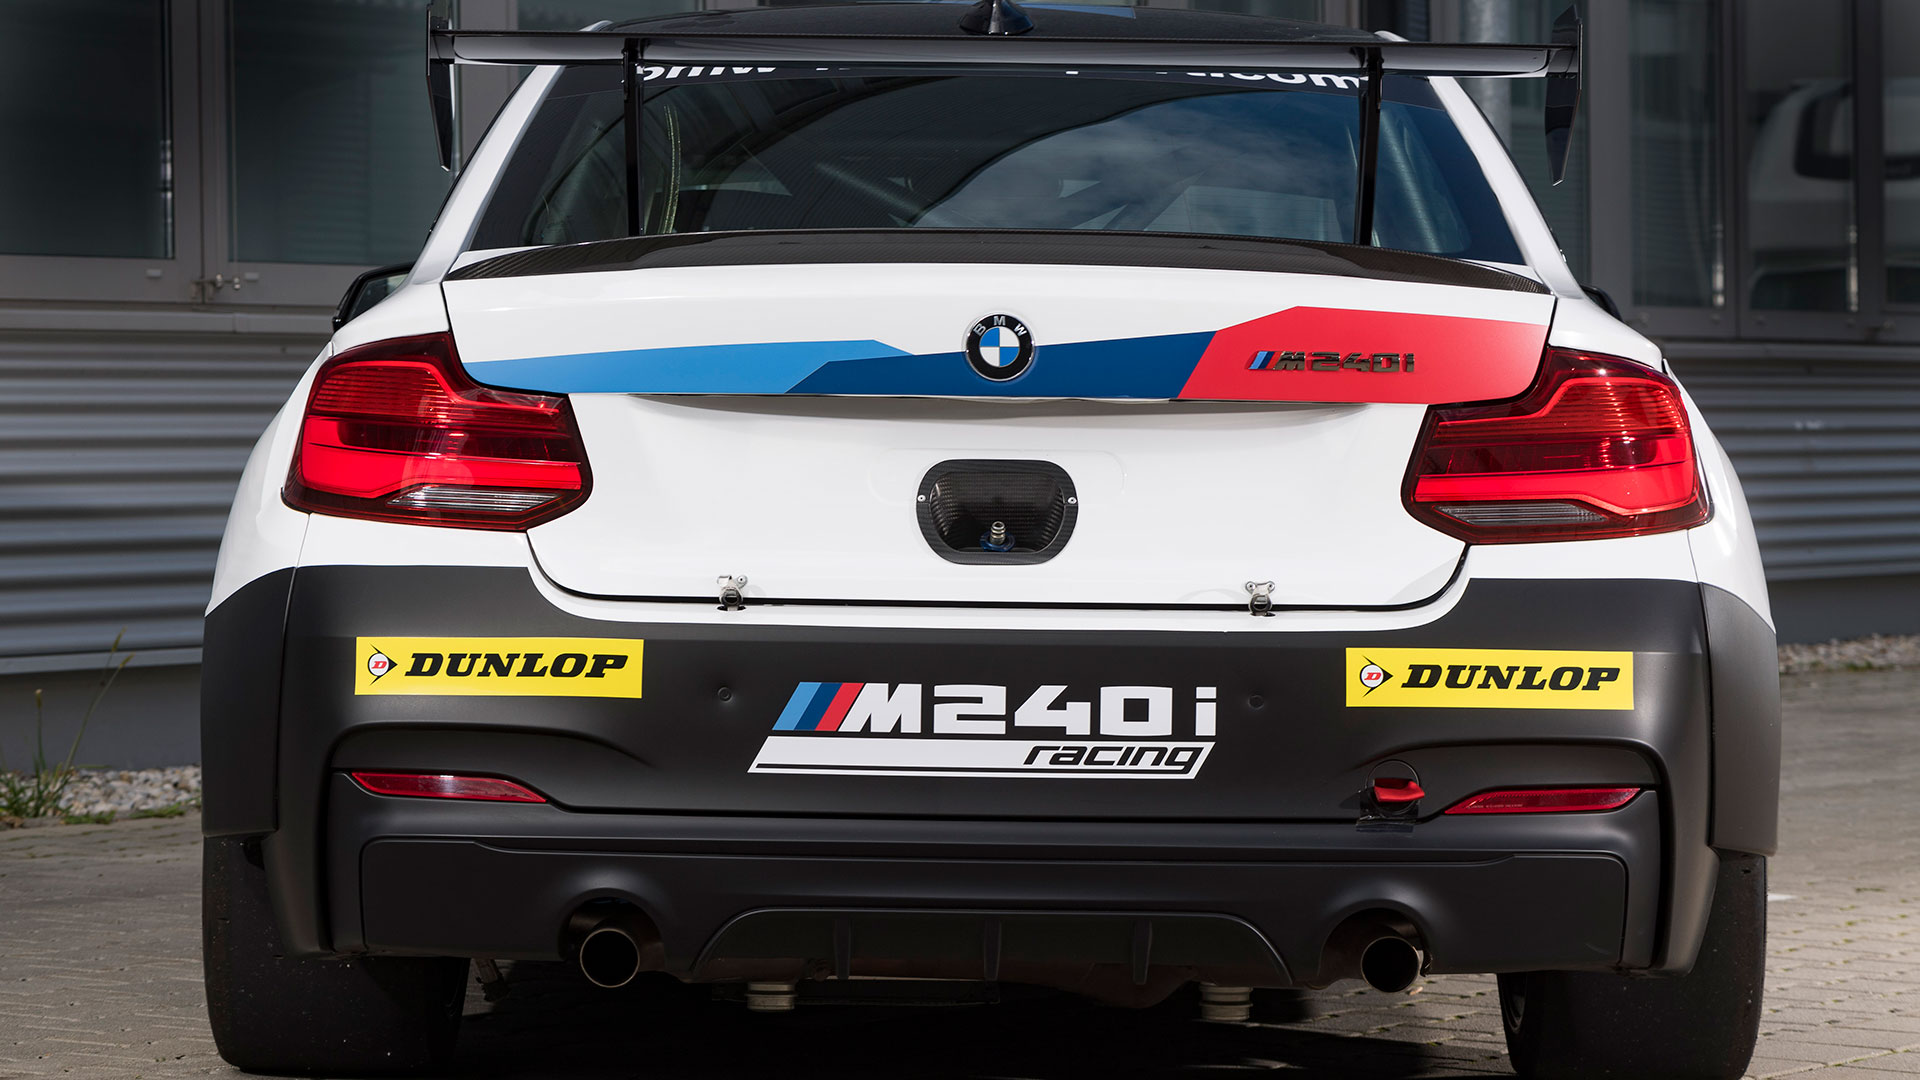 Wide Body Aero for the BMW m2 m240i